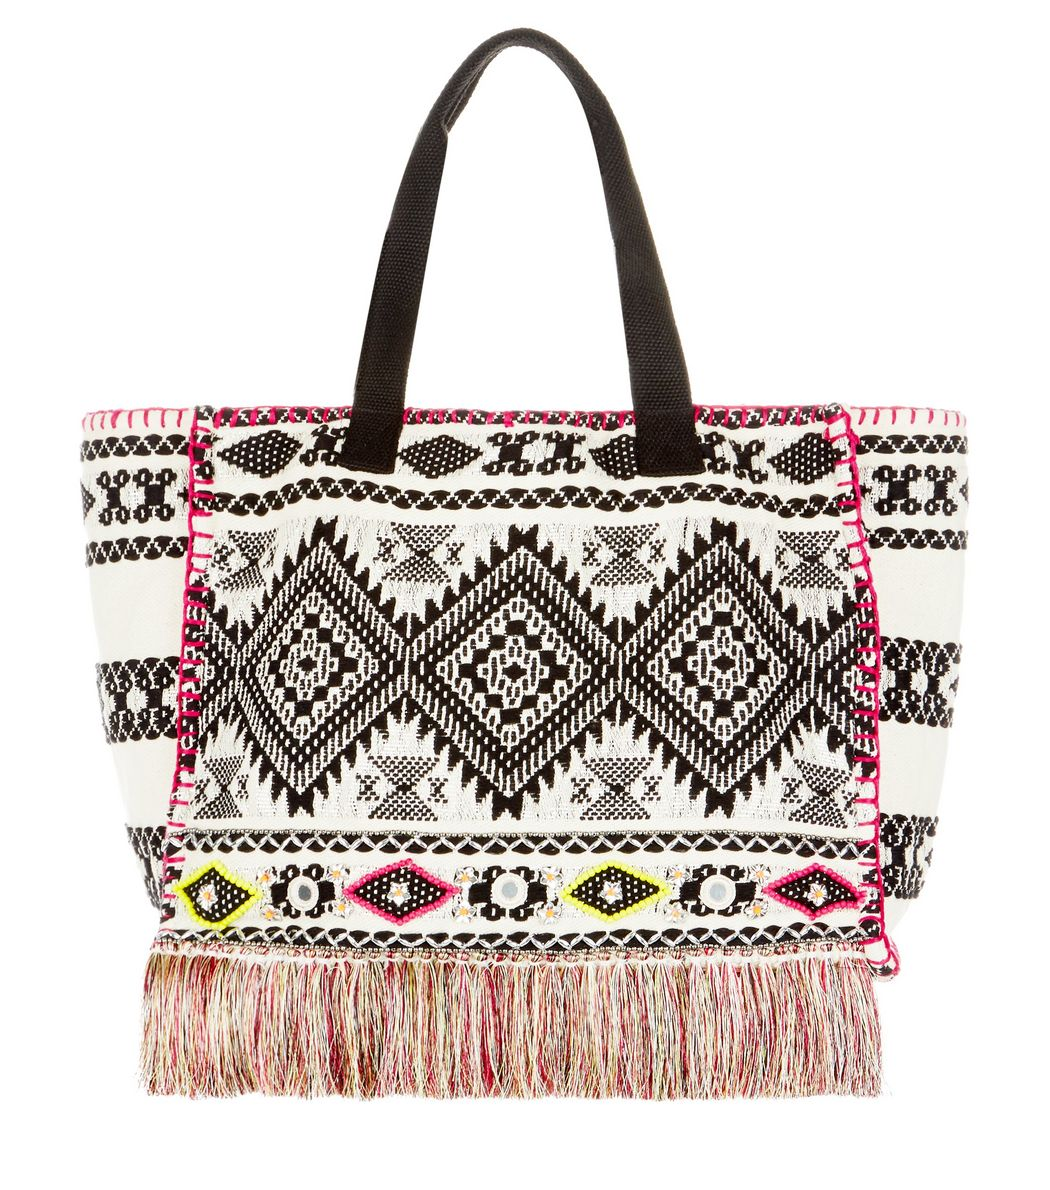 sac de plage newlook